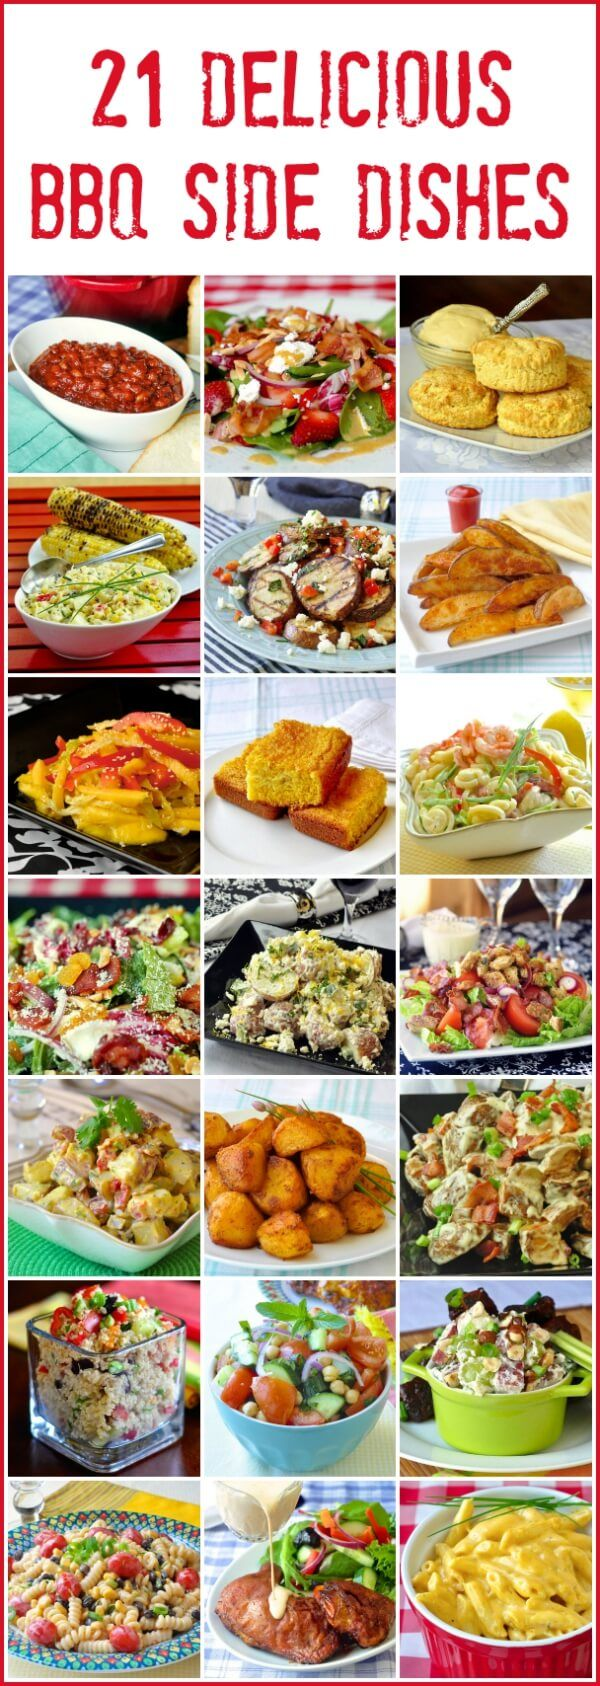 20 Best Barbecue Side Dishes So Many Easy Recipes To Choose From